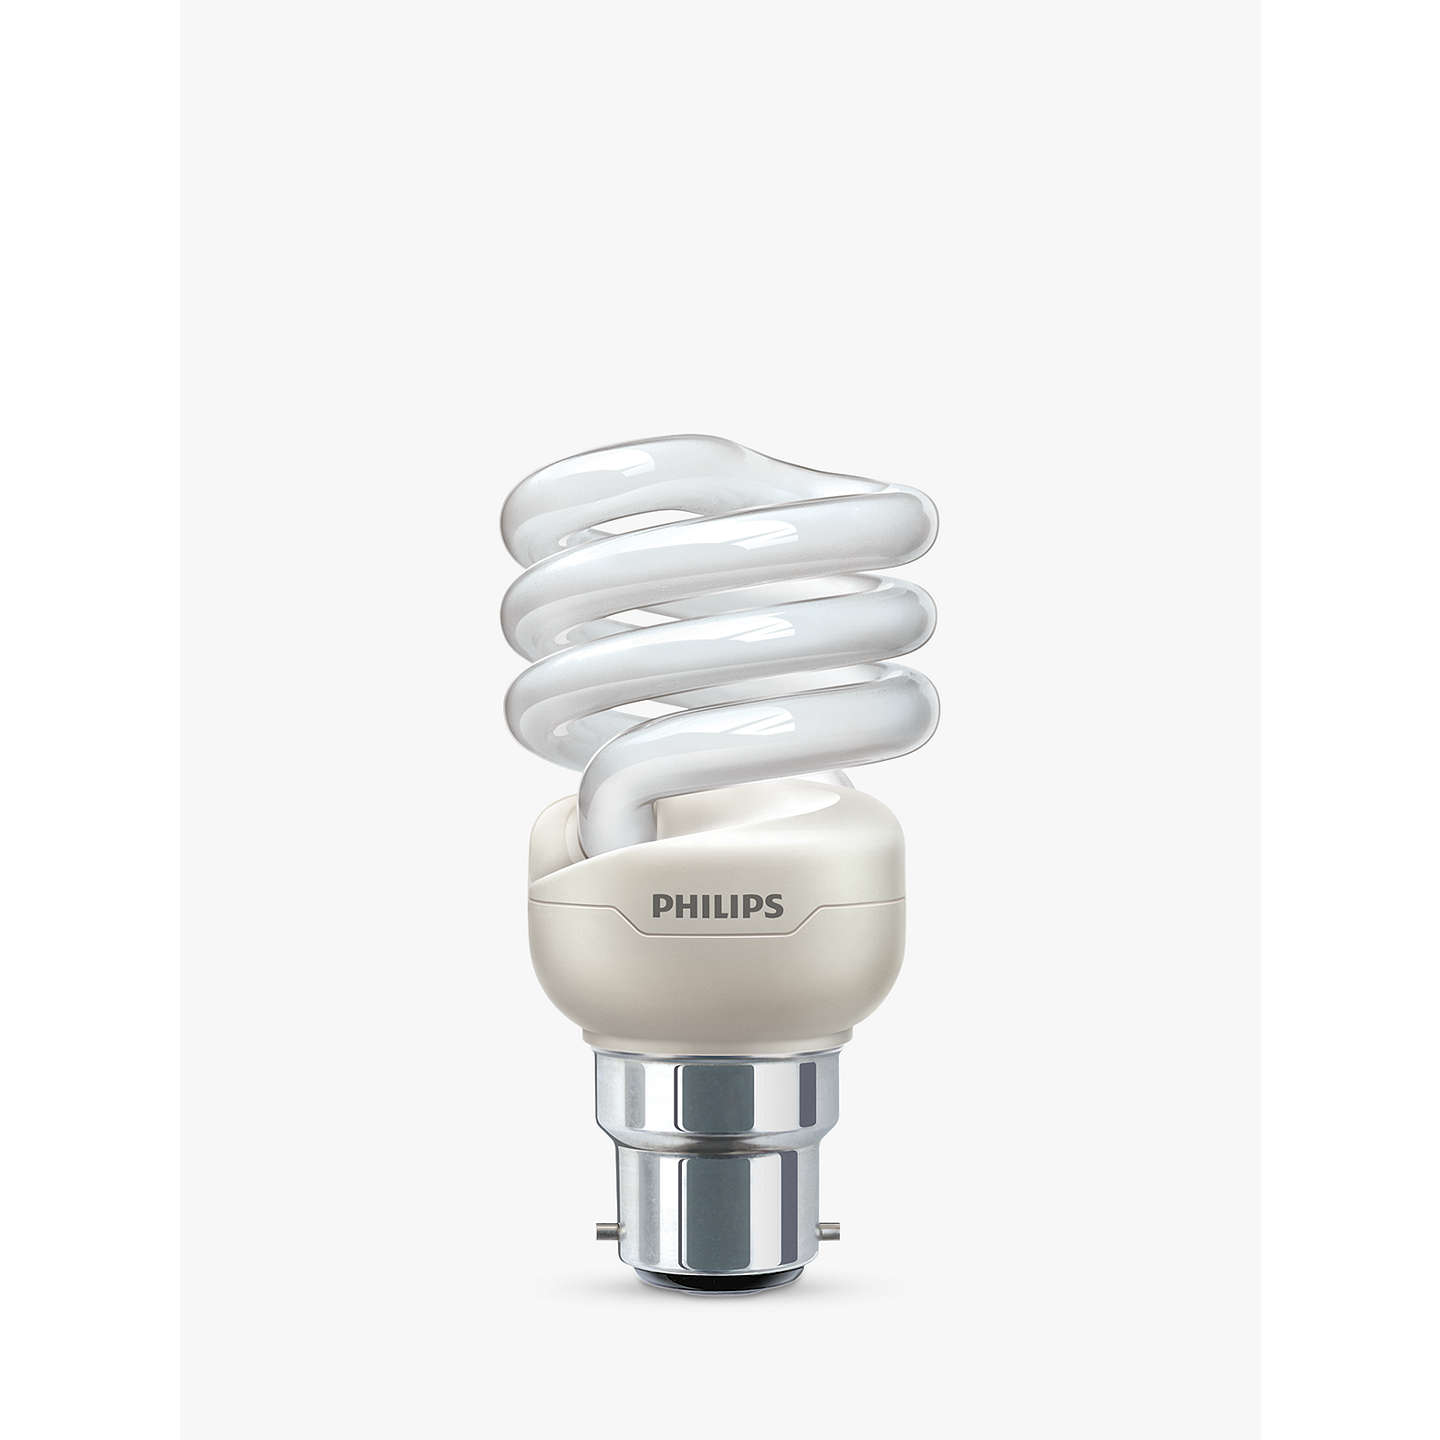 BuyPhilips 20W CFL Energy Saving Spiral Bulb, Opal Online at johnlewis.com